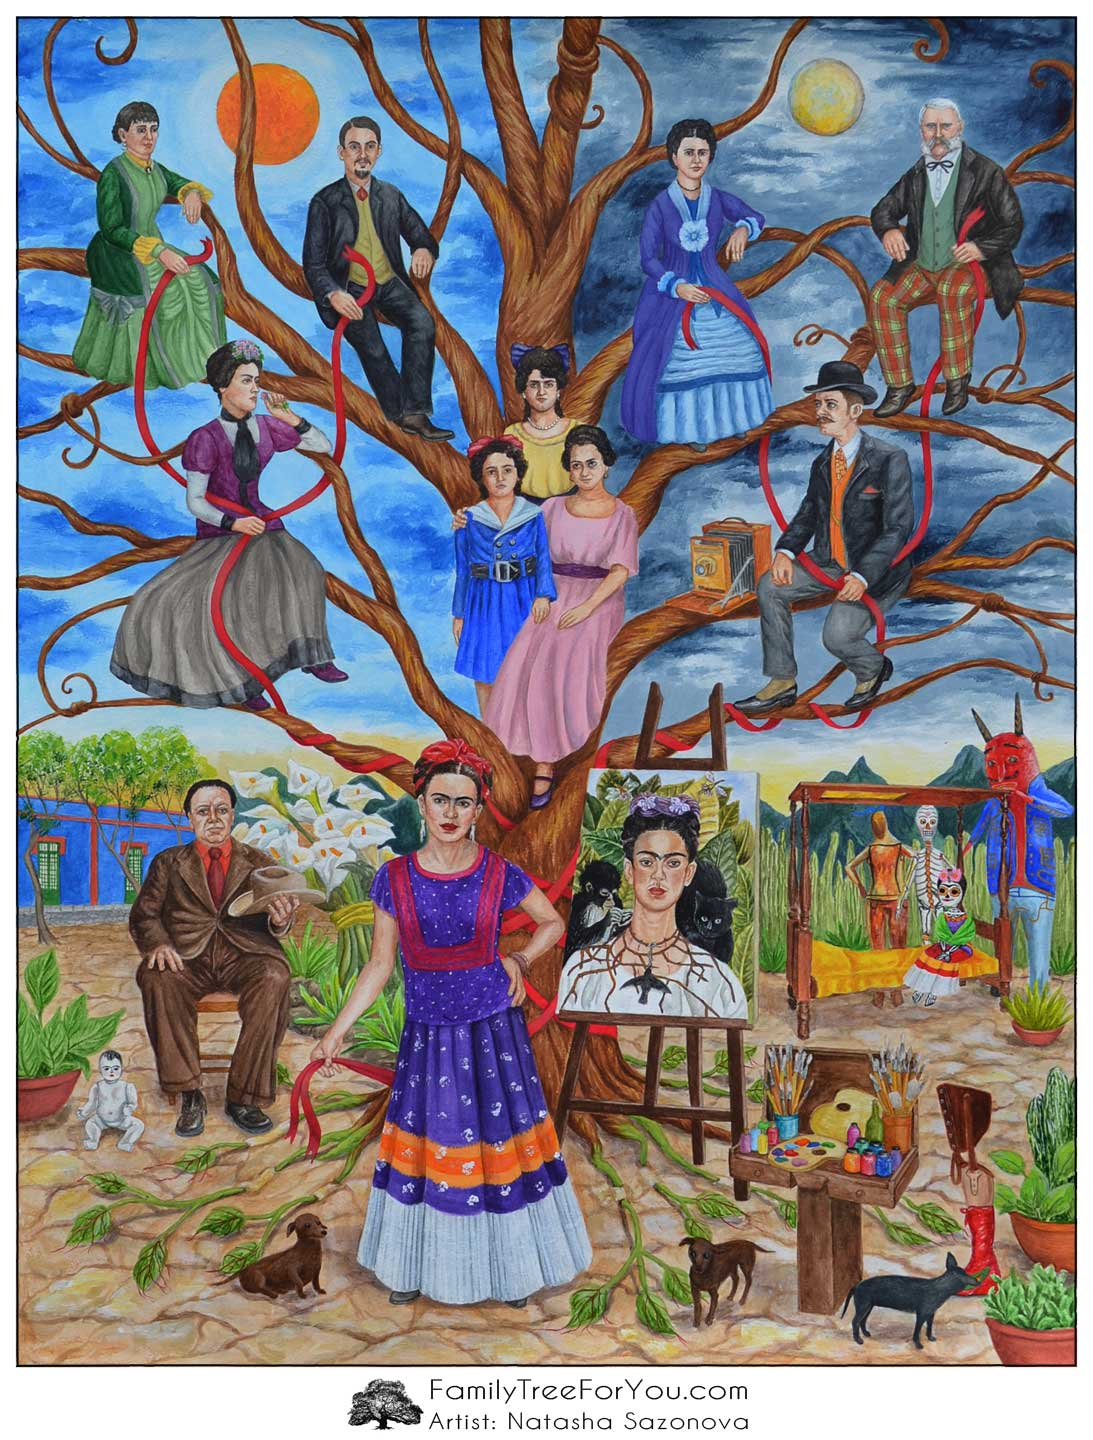 Frida Kahlo's custom family tree painting